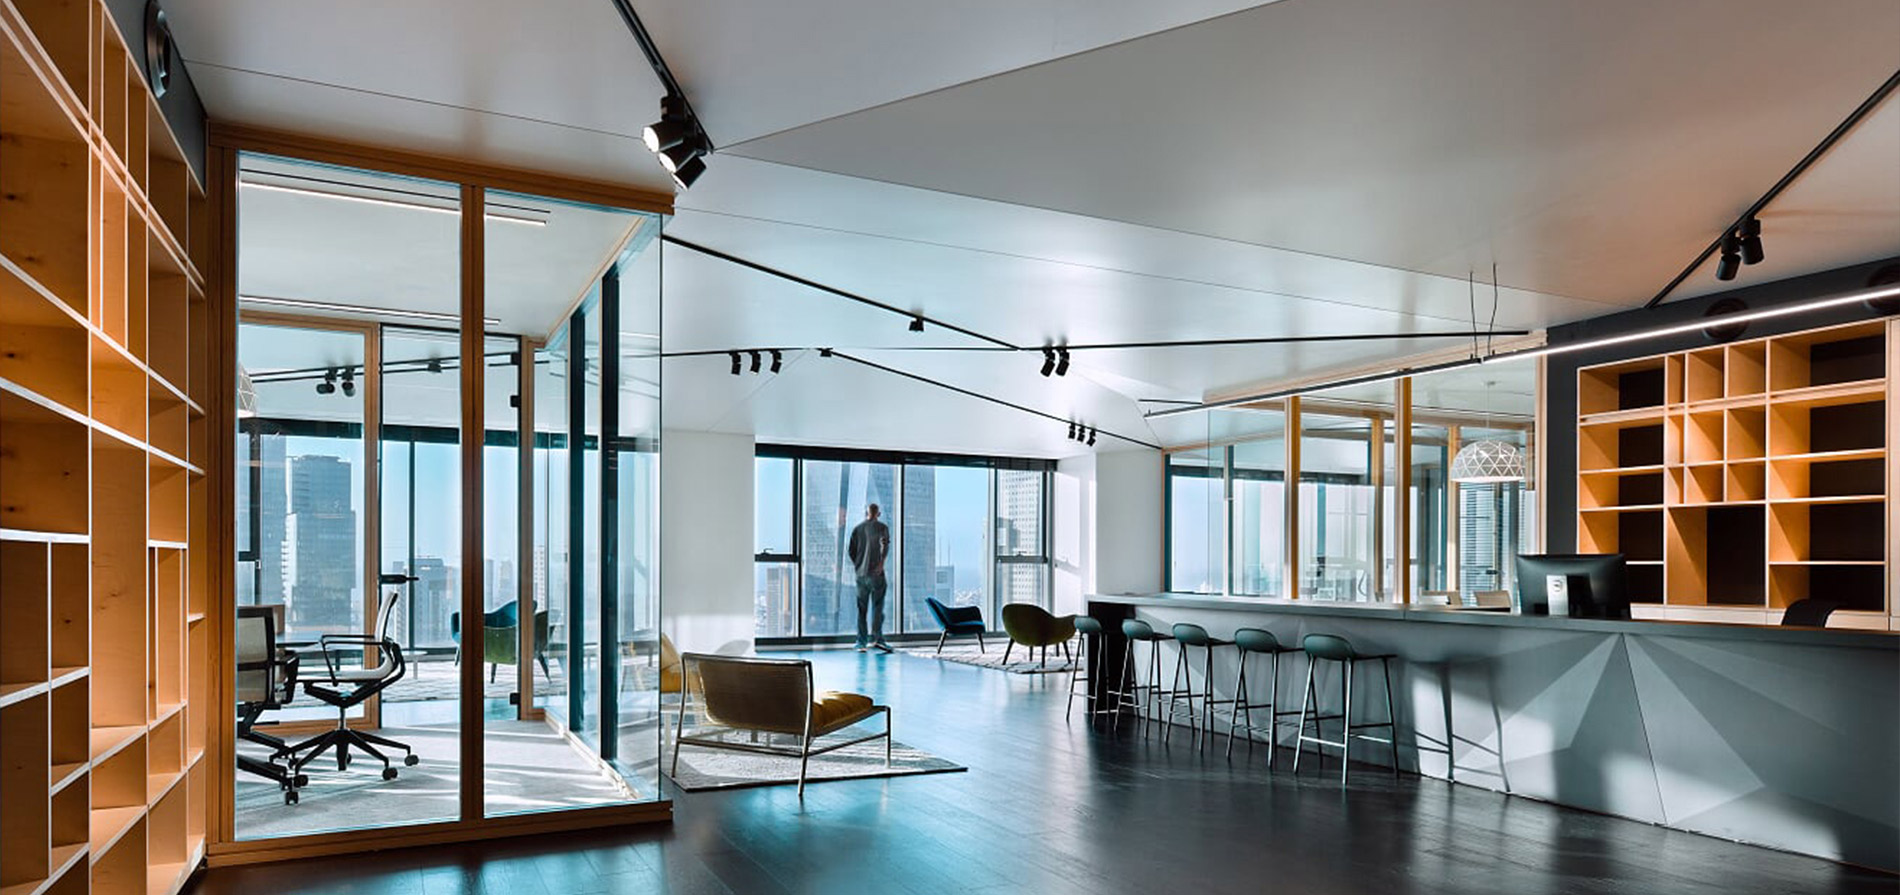 Profiles and accessories for stretch ceilings' installation